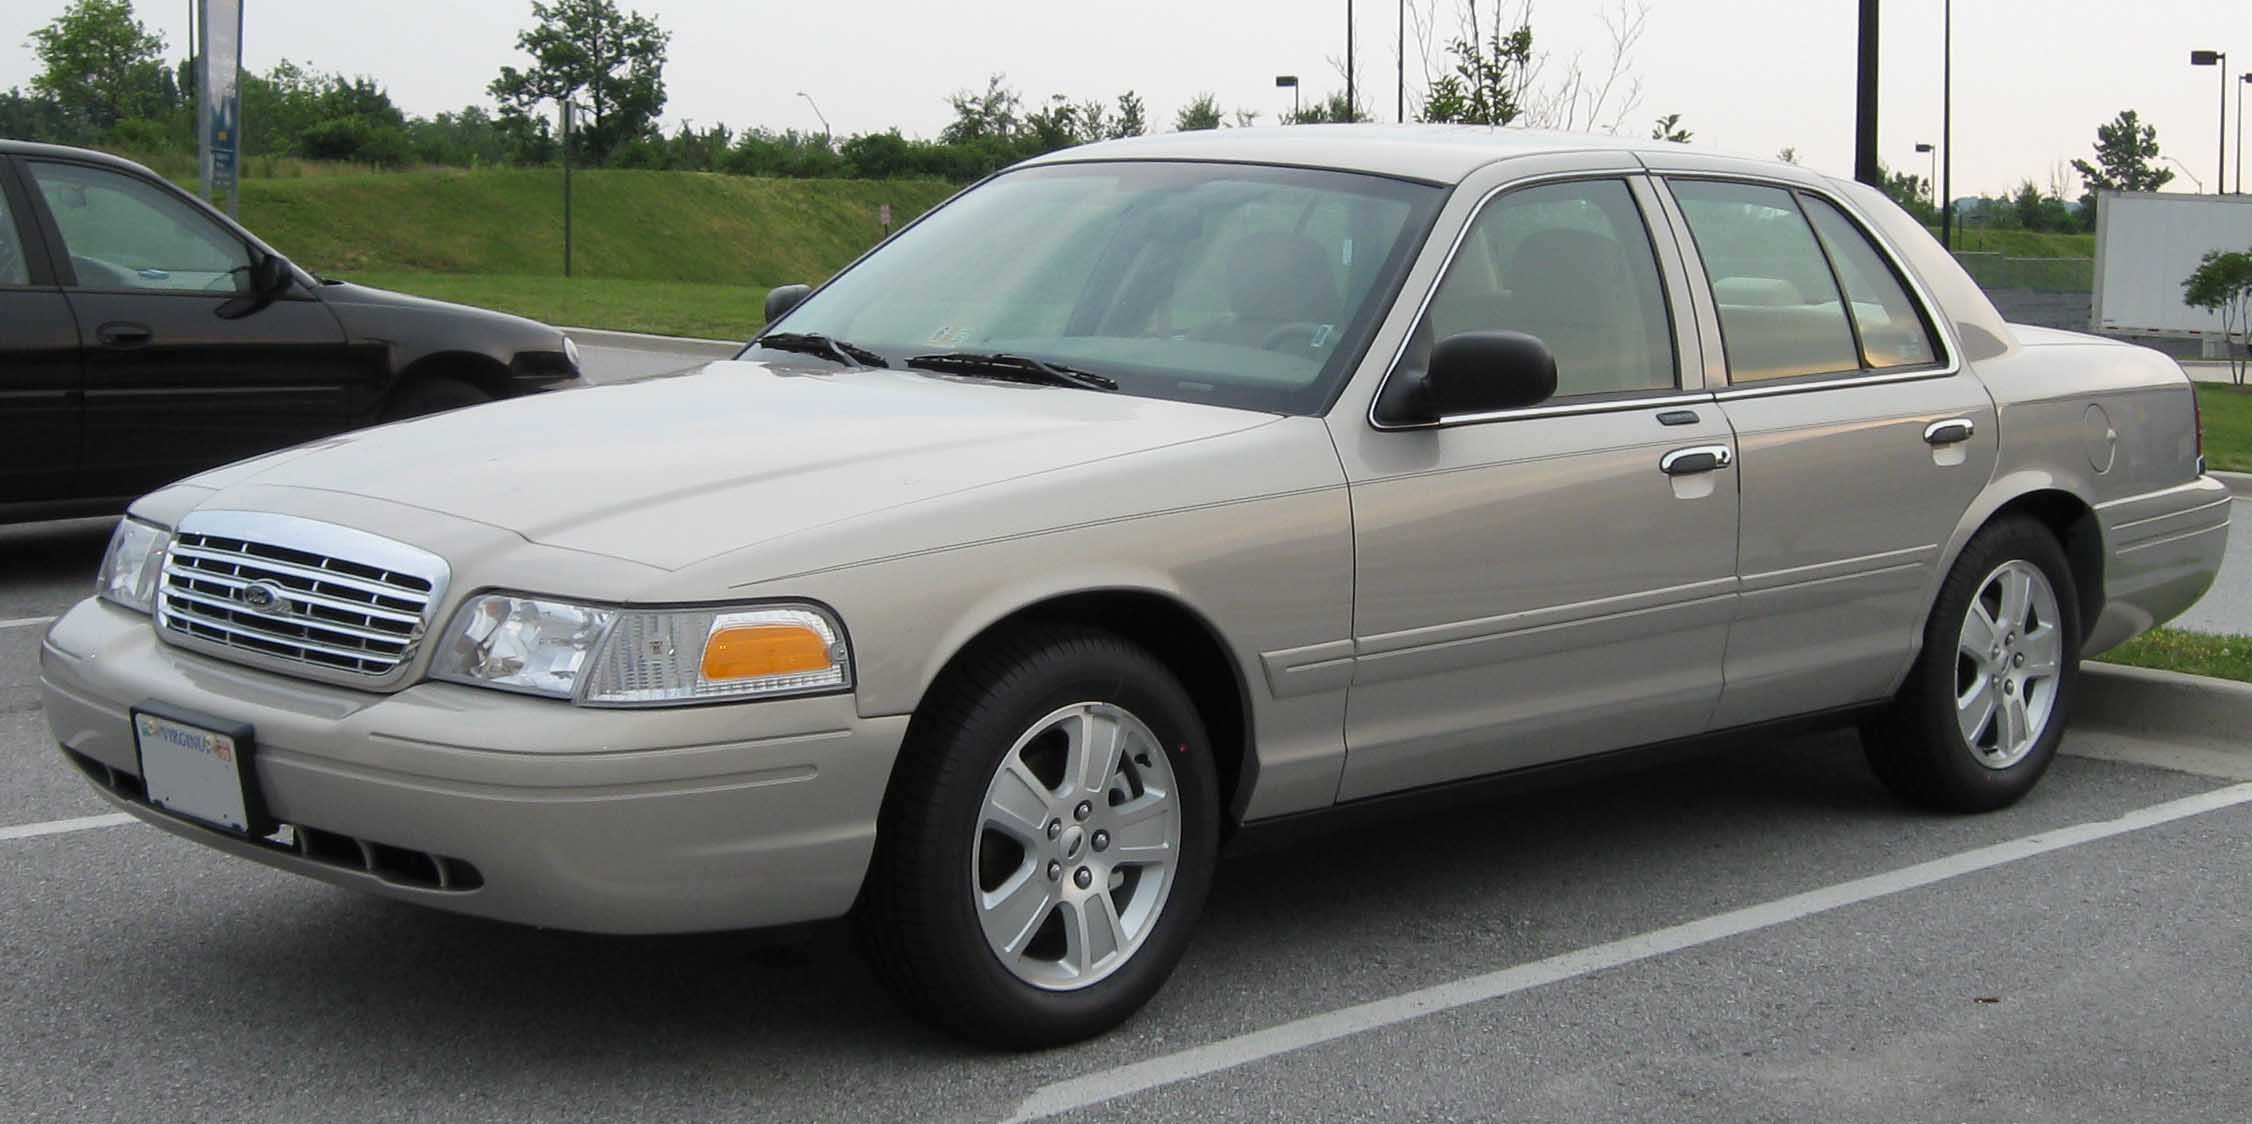 Ford Crown Victoria #12